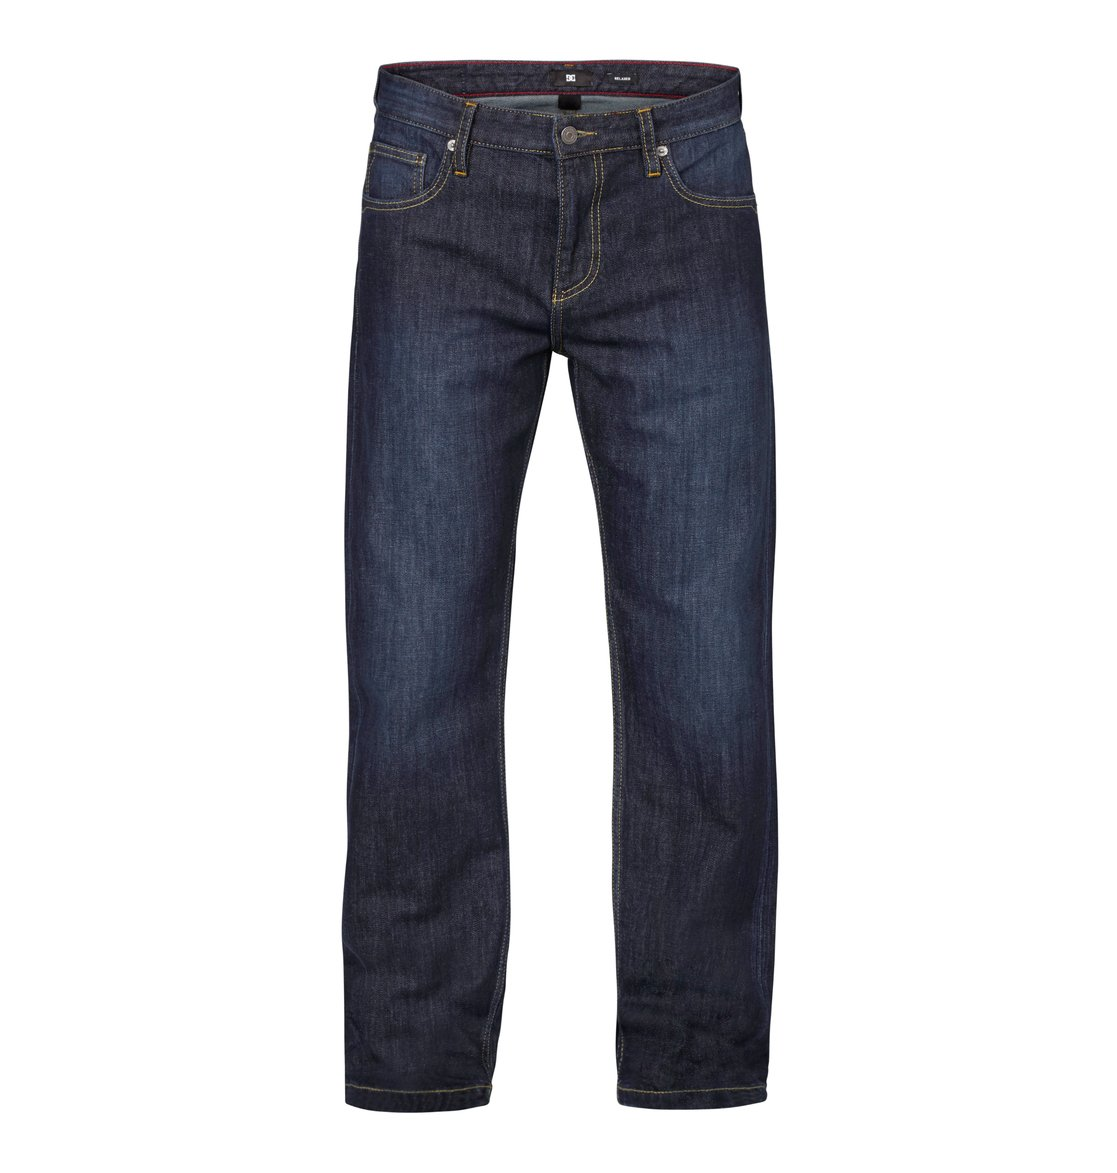 Mens Jeans With 28 Inch Inseam